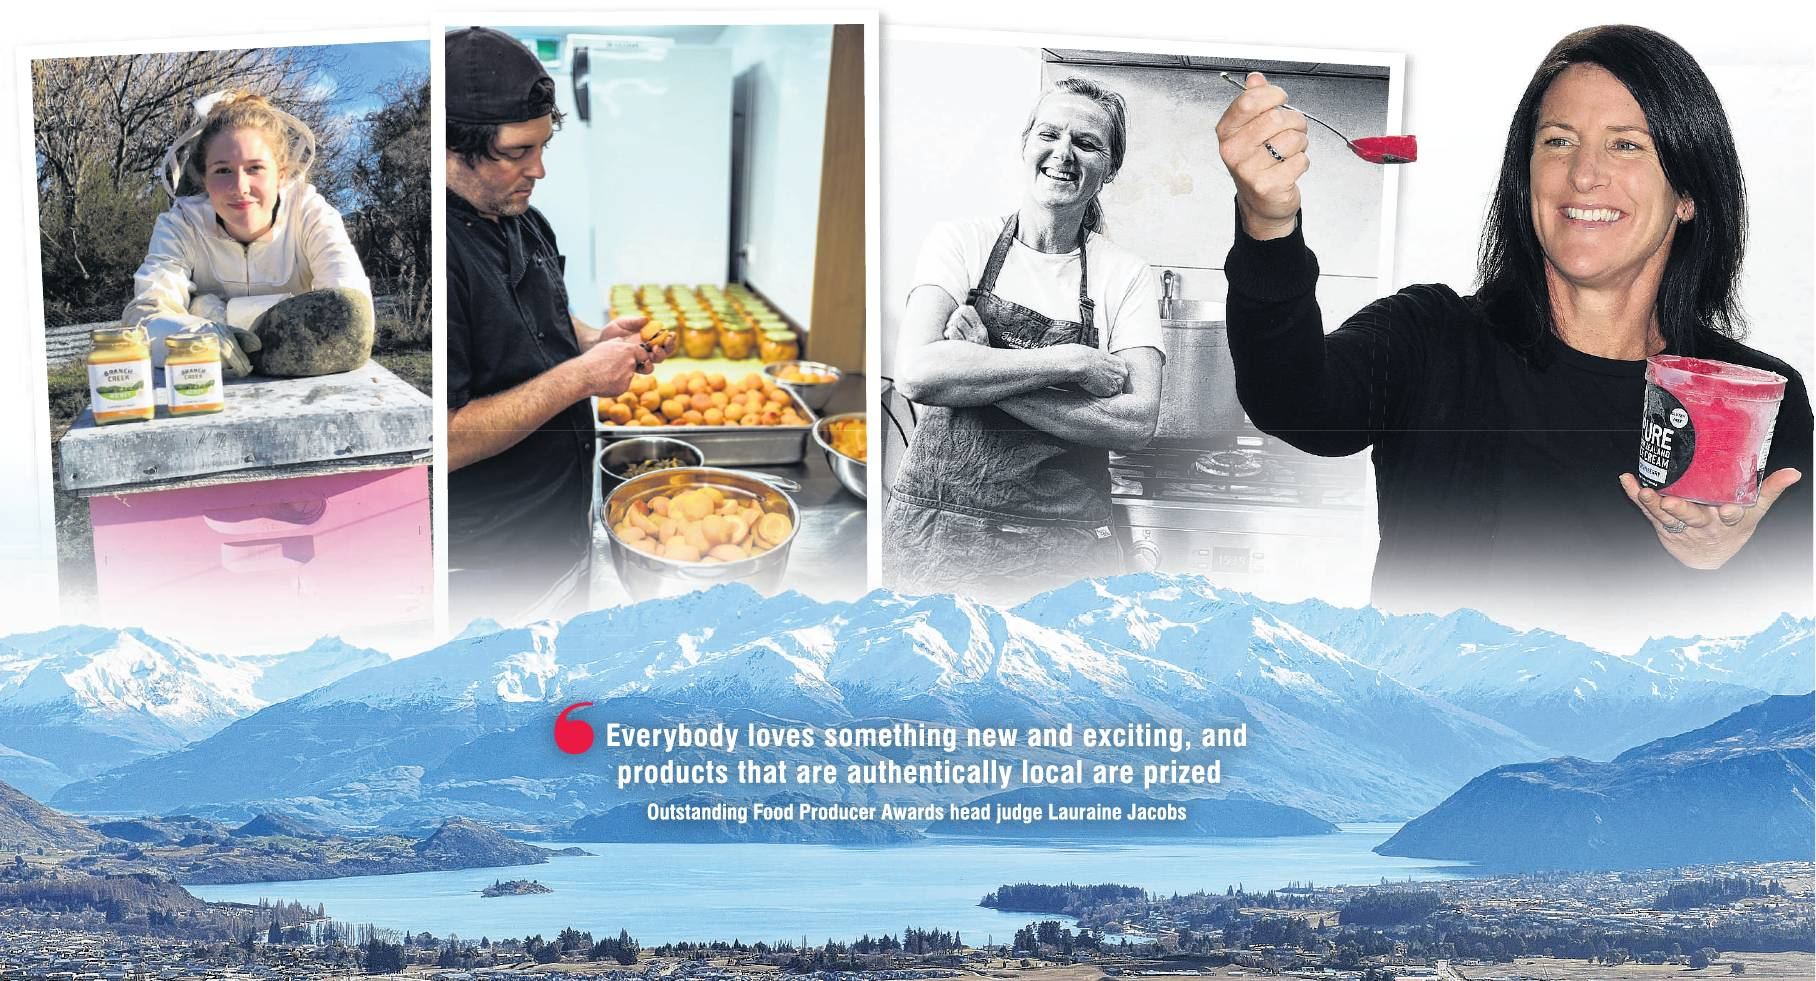 Wanaka food producers (from left) Jessica Curtis, of Branch Creek Honey, Gus Hayden, of Augustines of Central Otago, Tineke-Maree Sutton, of Taste of the Alps, and Anna Howard, of Pure New Zealand Ice Cream. PHOTOS: SUPPLIED